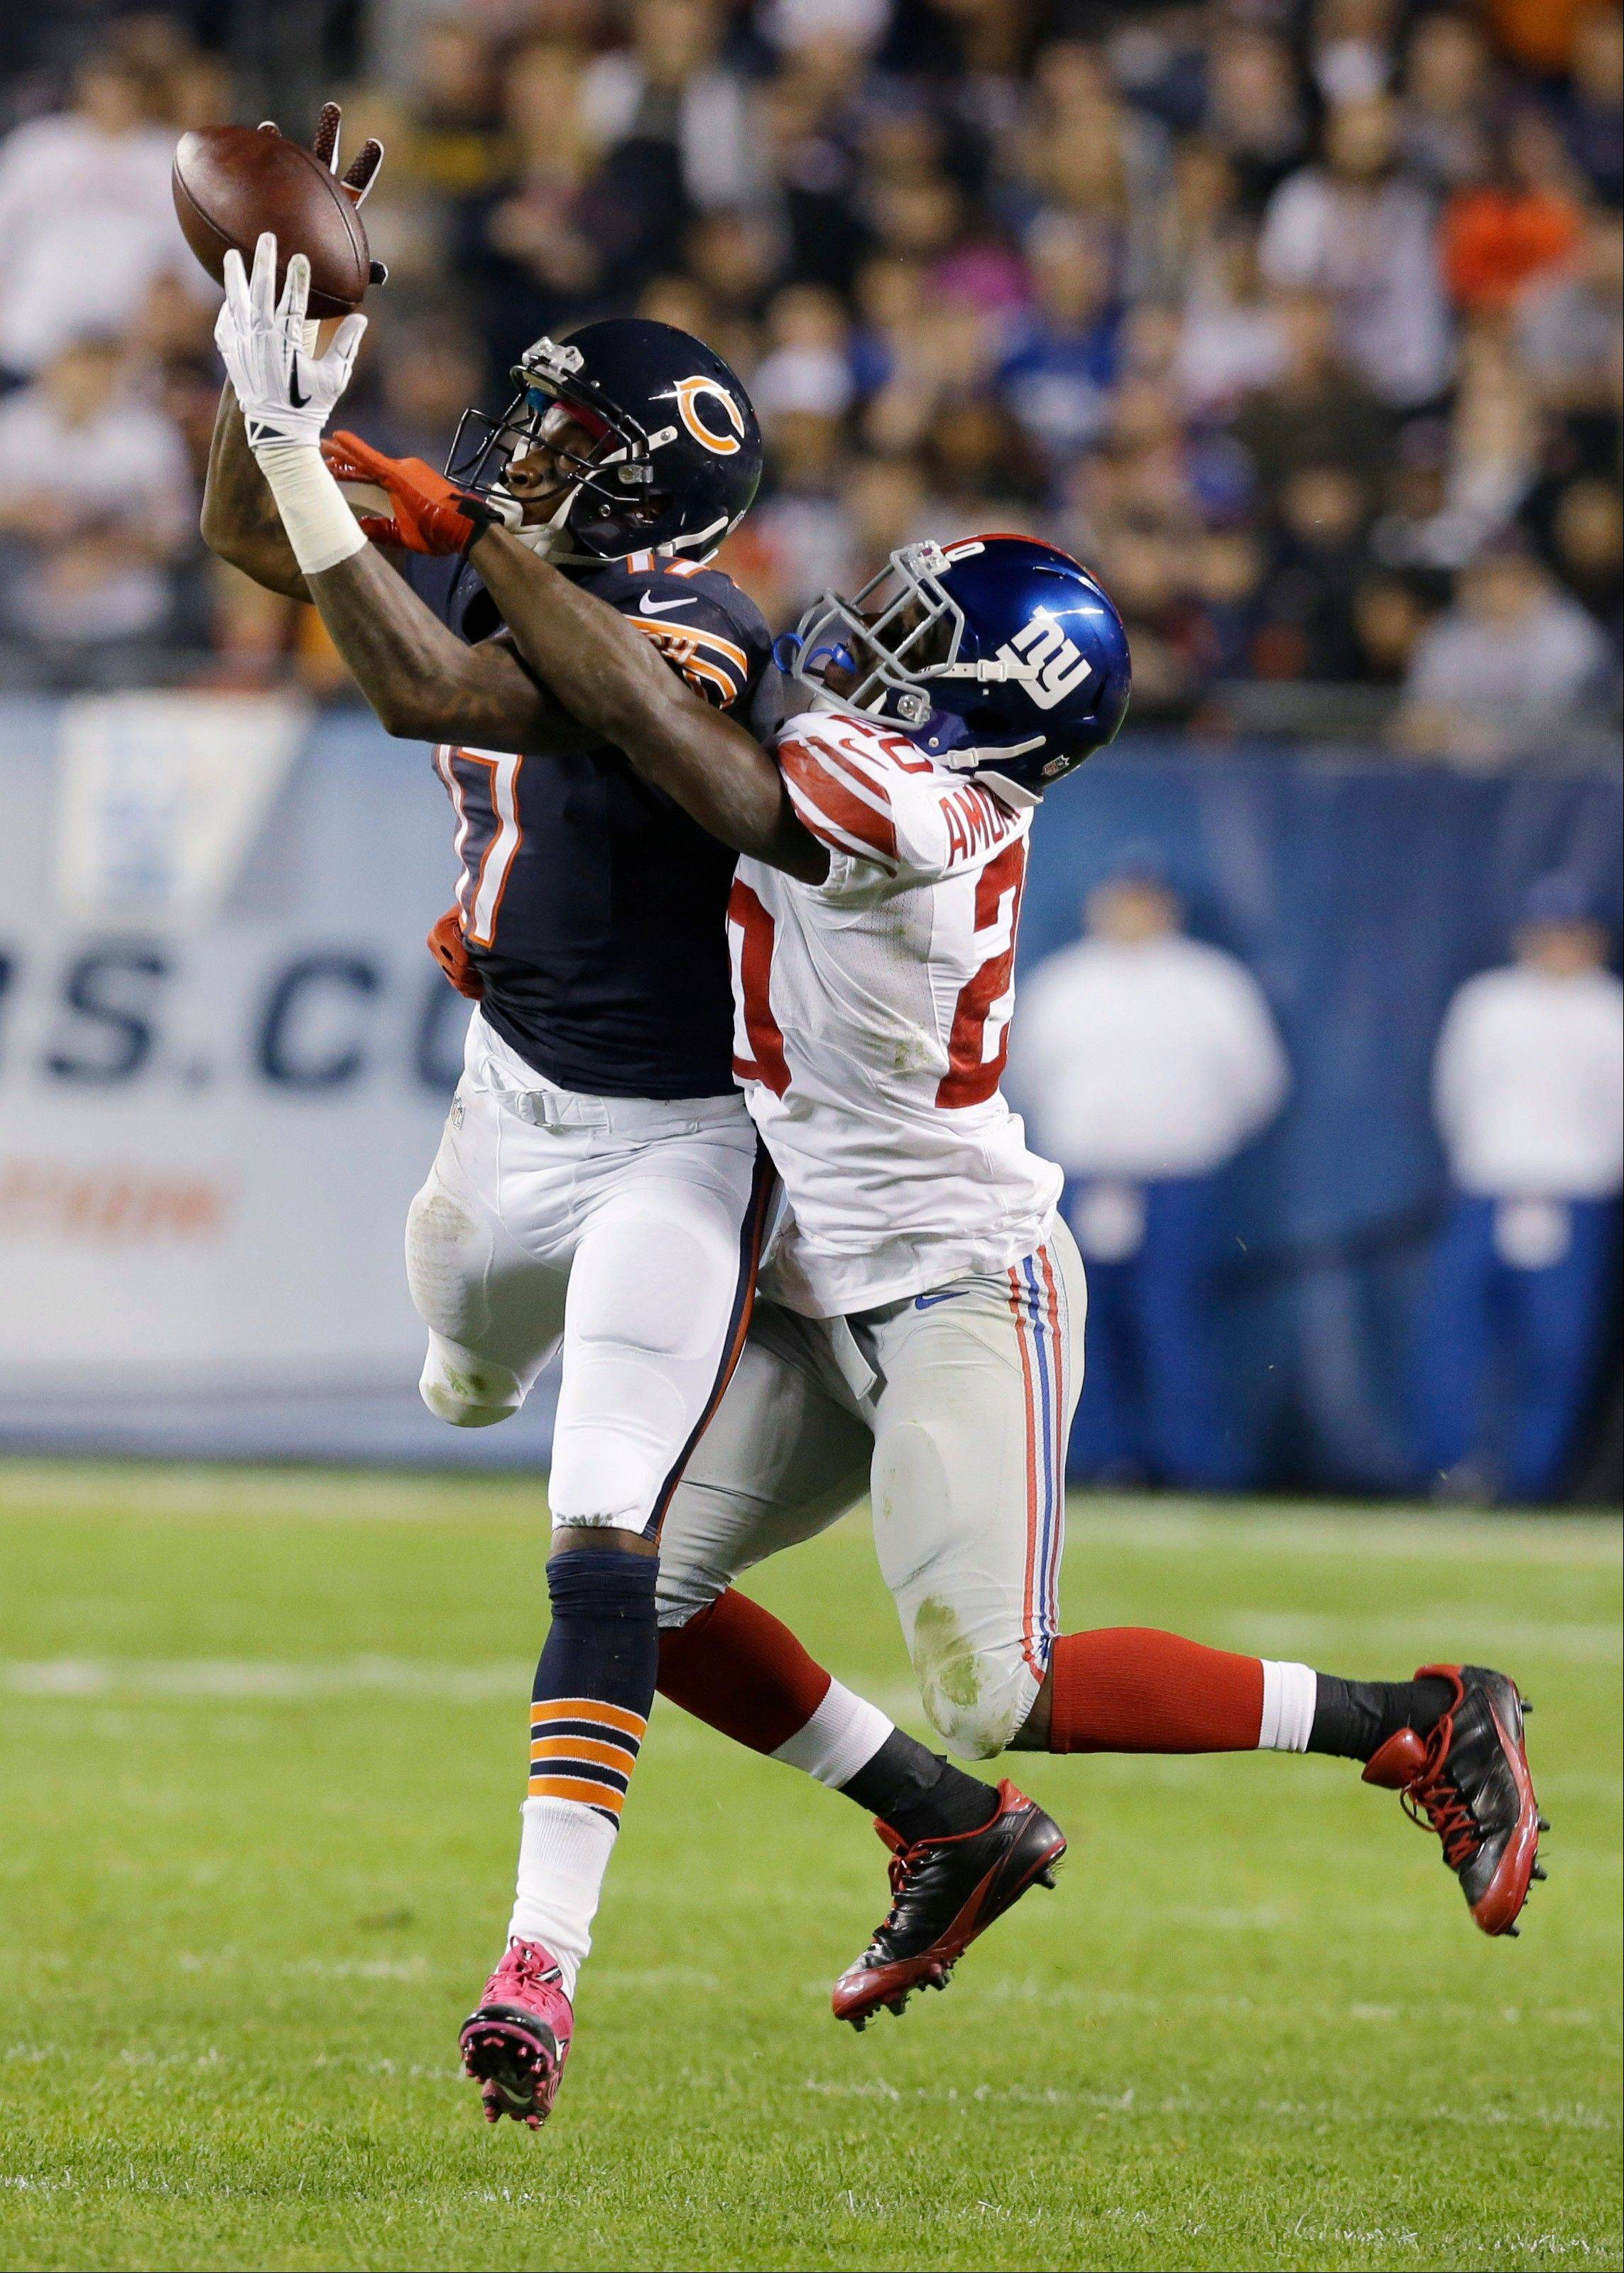 Chicago Bears wide receiver Alshon Jeffery (17) misses a catch under pressure from New York Giants cornerback Prince Amukamara (20) in the second half of an NFL football game, Thursday, Oct. 10, 2013, in Chicago.